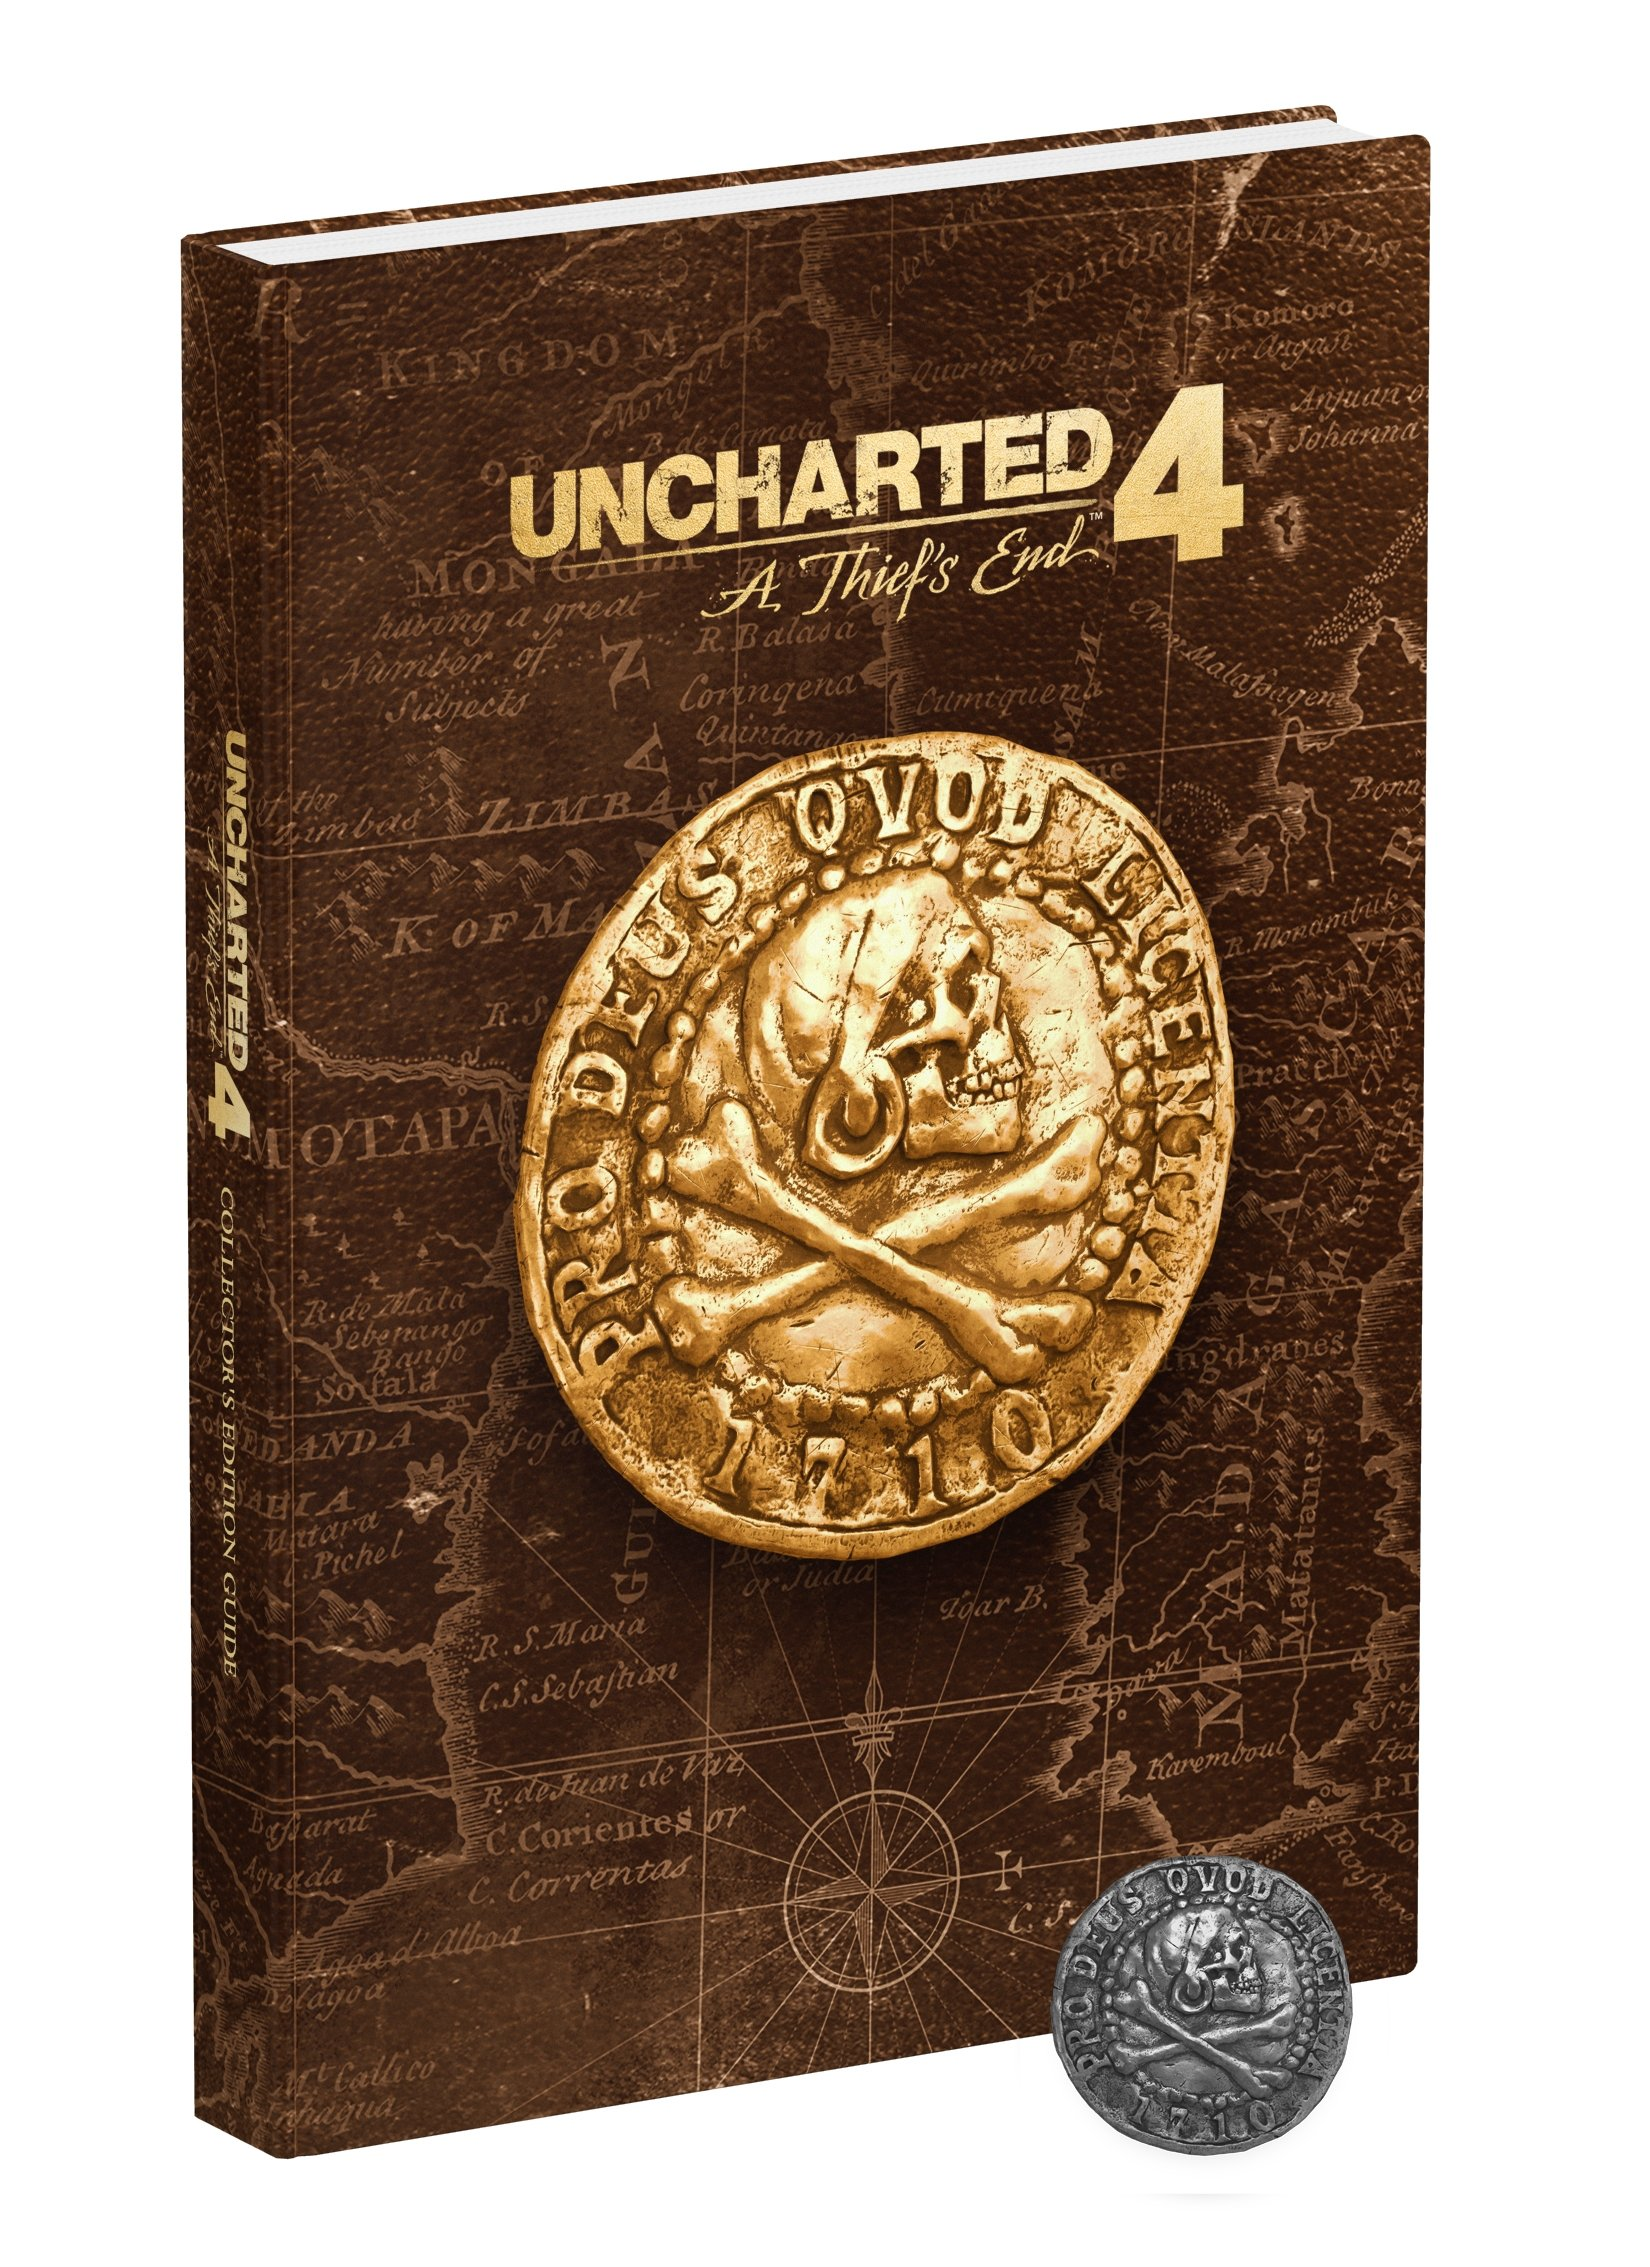 Uncharted 4: A Thief's End Collector's Edition Strategy Guide ISBN-13 9780744016628